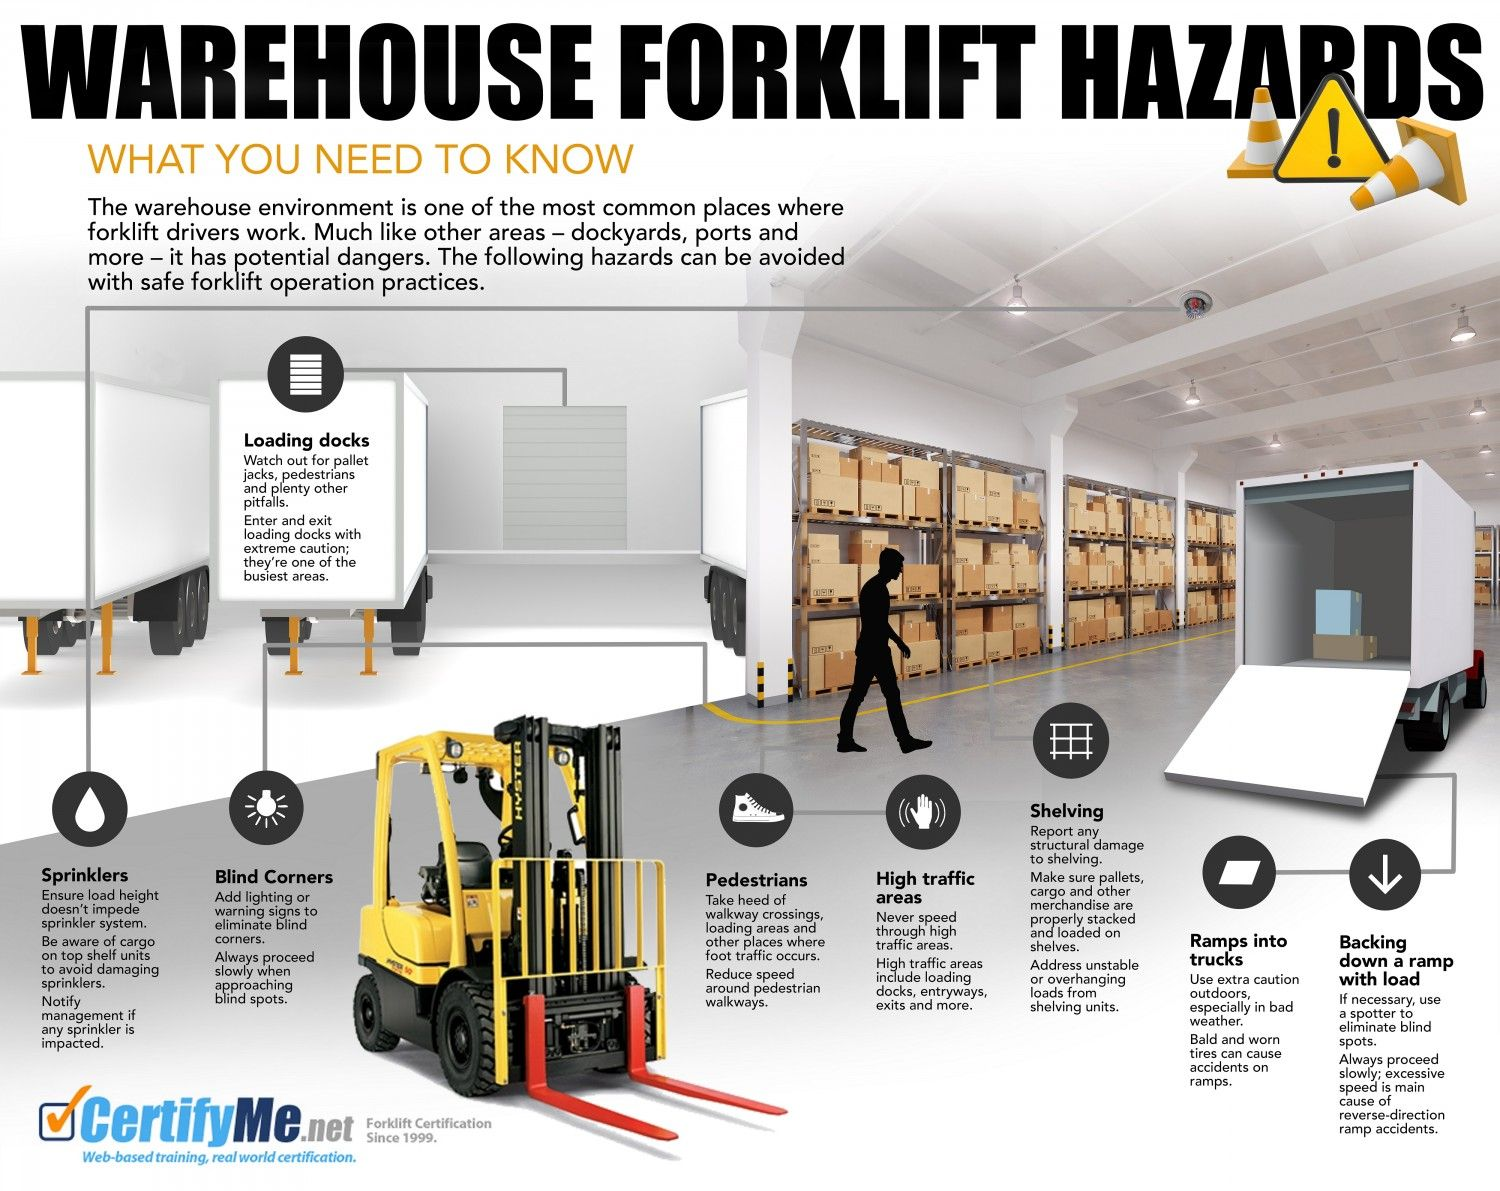 The warehouse environment is one of the most common places where forklift drivers work much like other areas dockyards ports and more it has pote